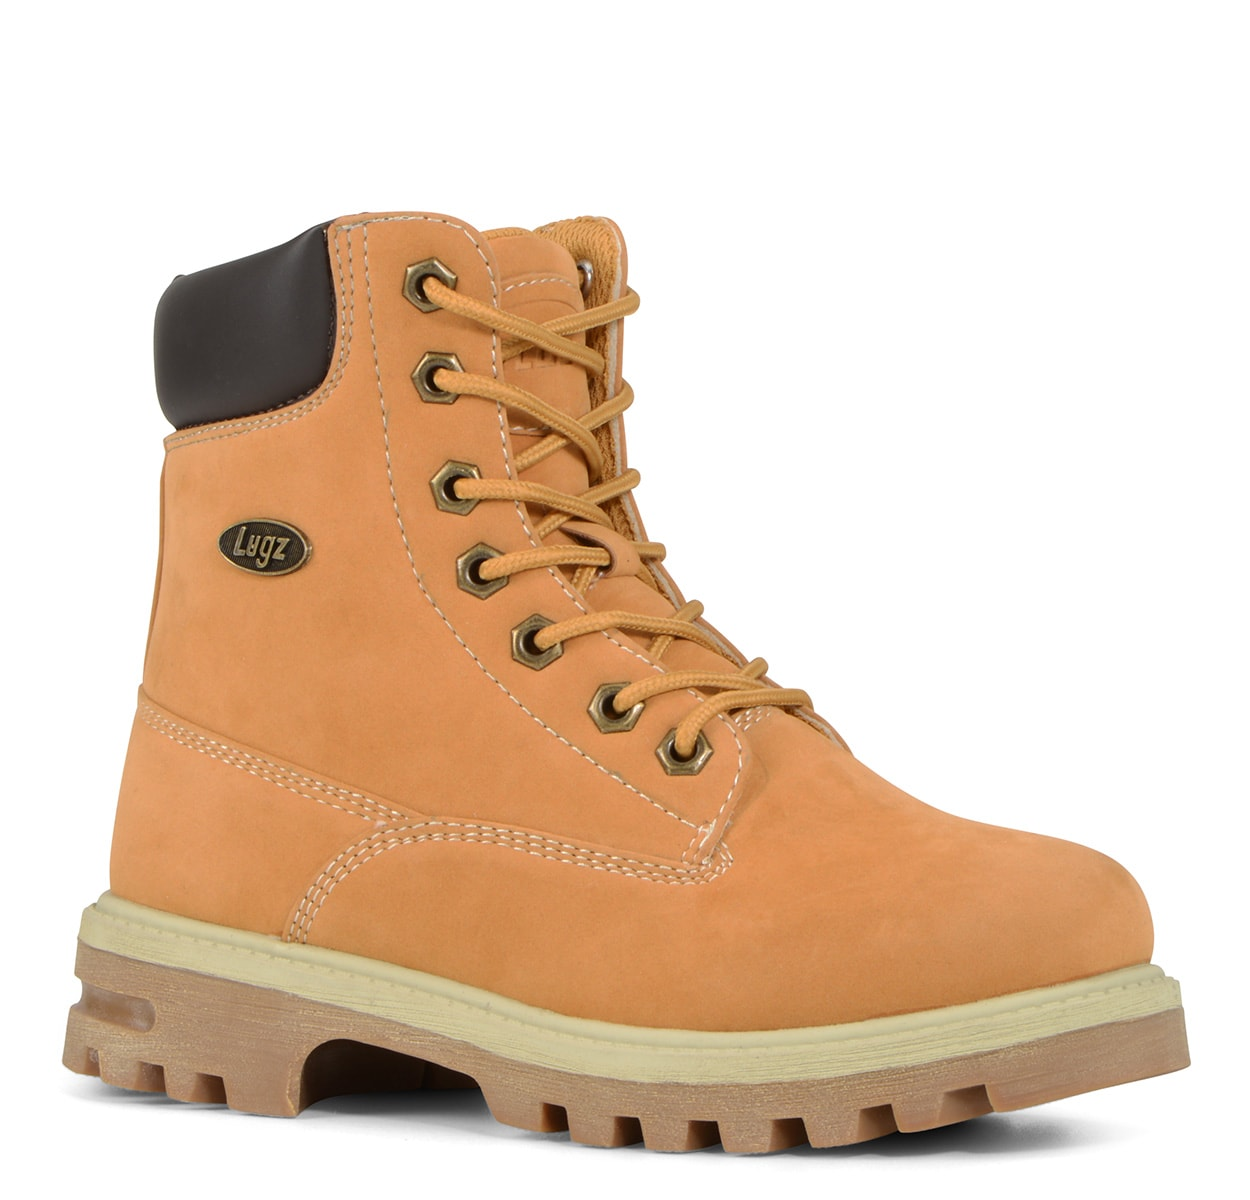 Gradeschool Empire Hi Water Resistant 6-Inch Boot (Choose Your Color: GOLDEN WHEAT/BARK/CREAM, Choose Your Size: 6.5)